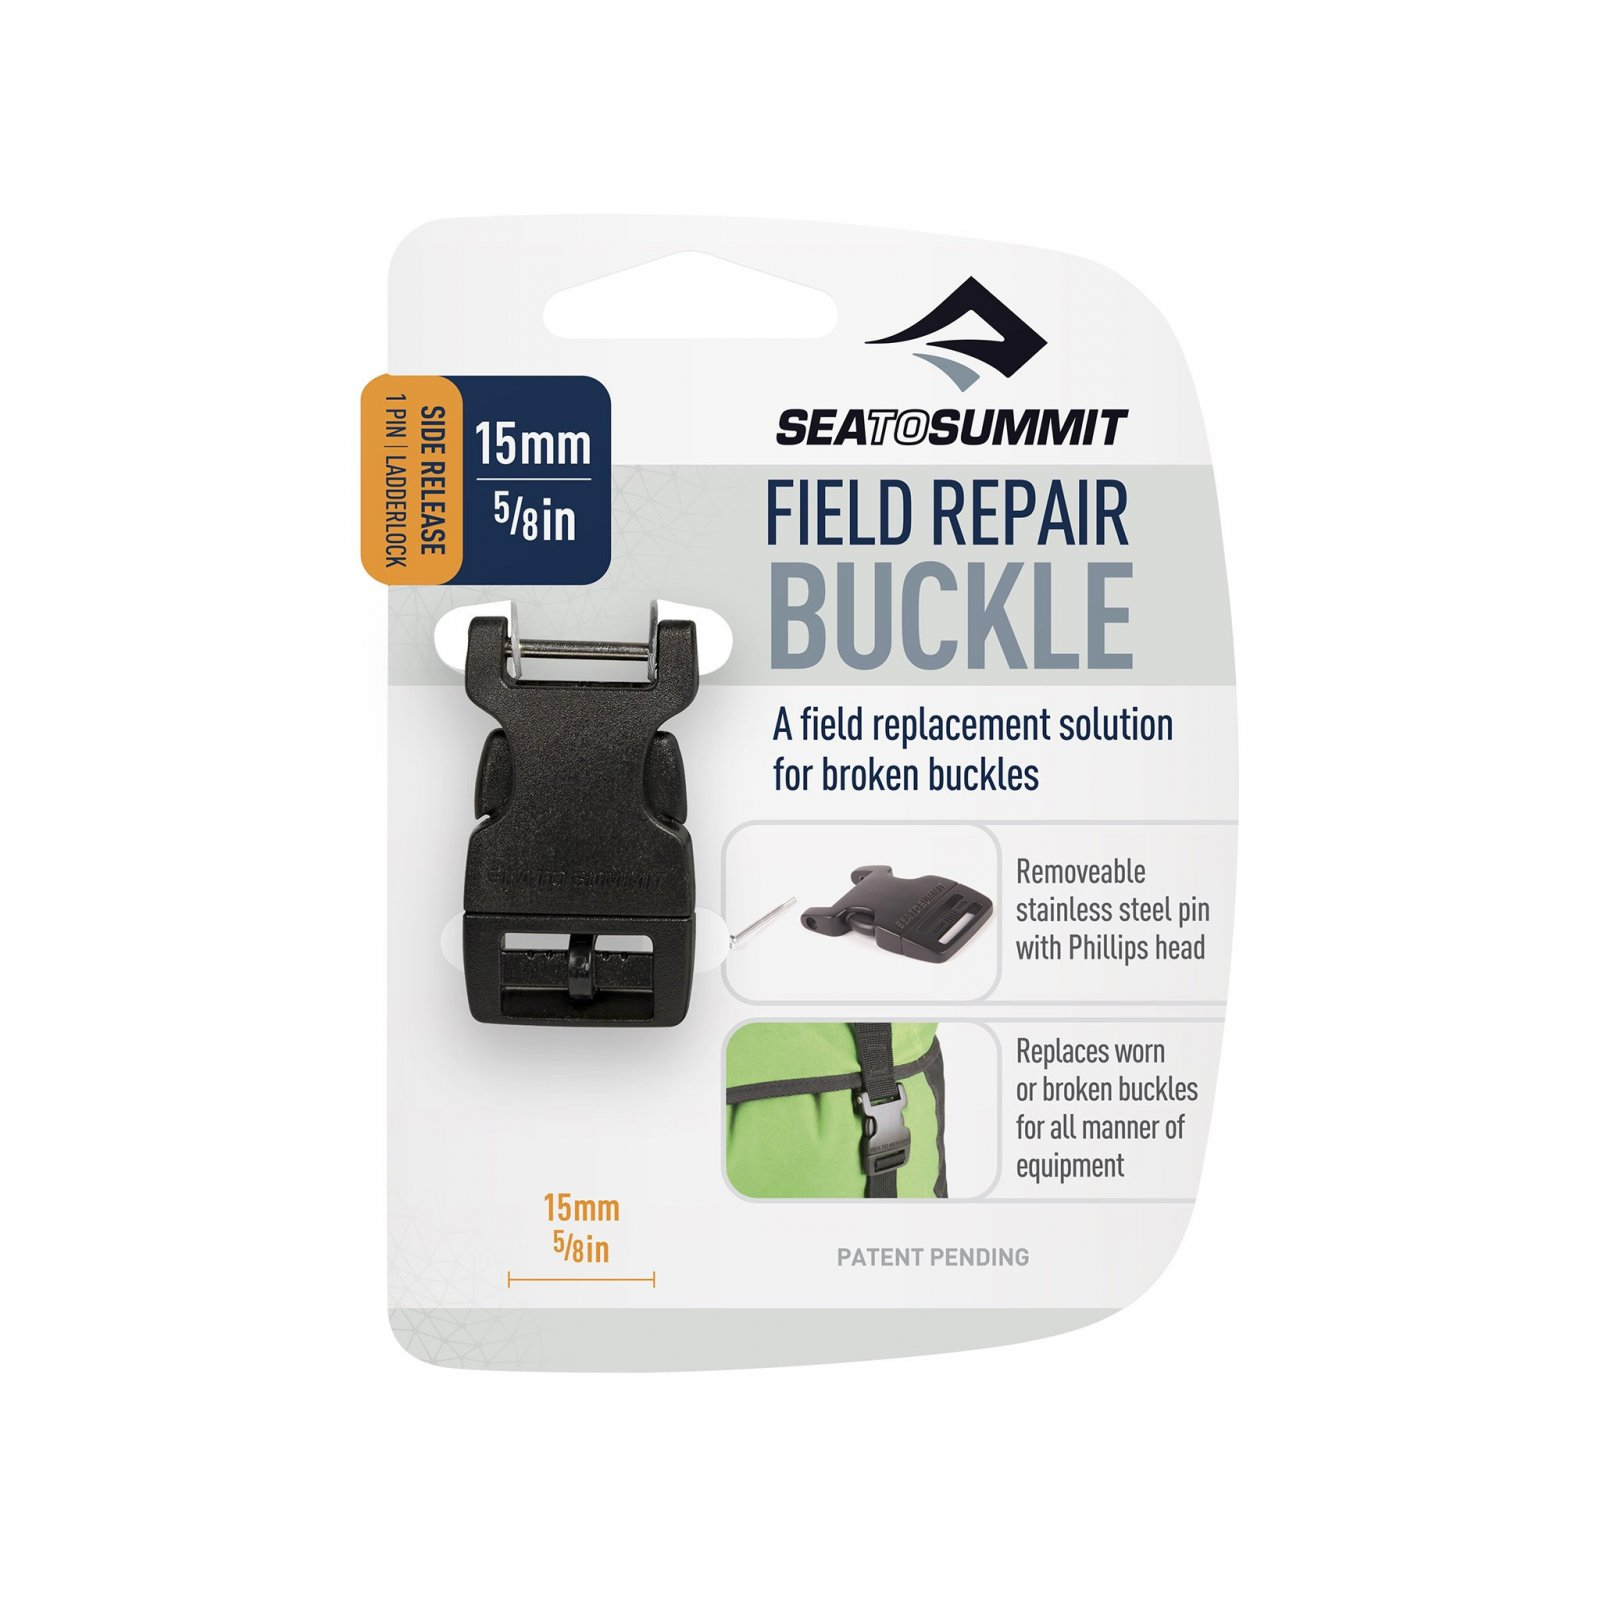 Sea to Summit Side Release Field Repair Buckle with Removable Pin